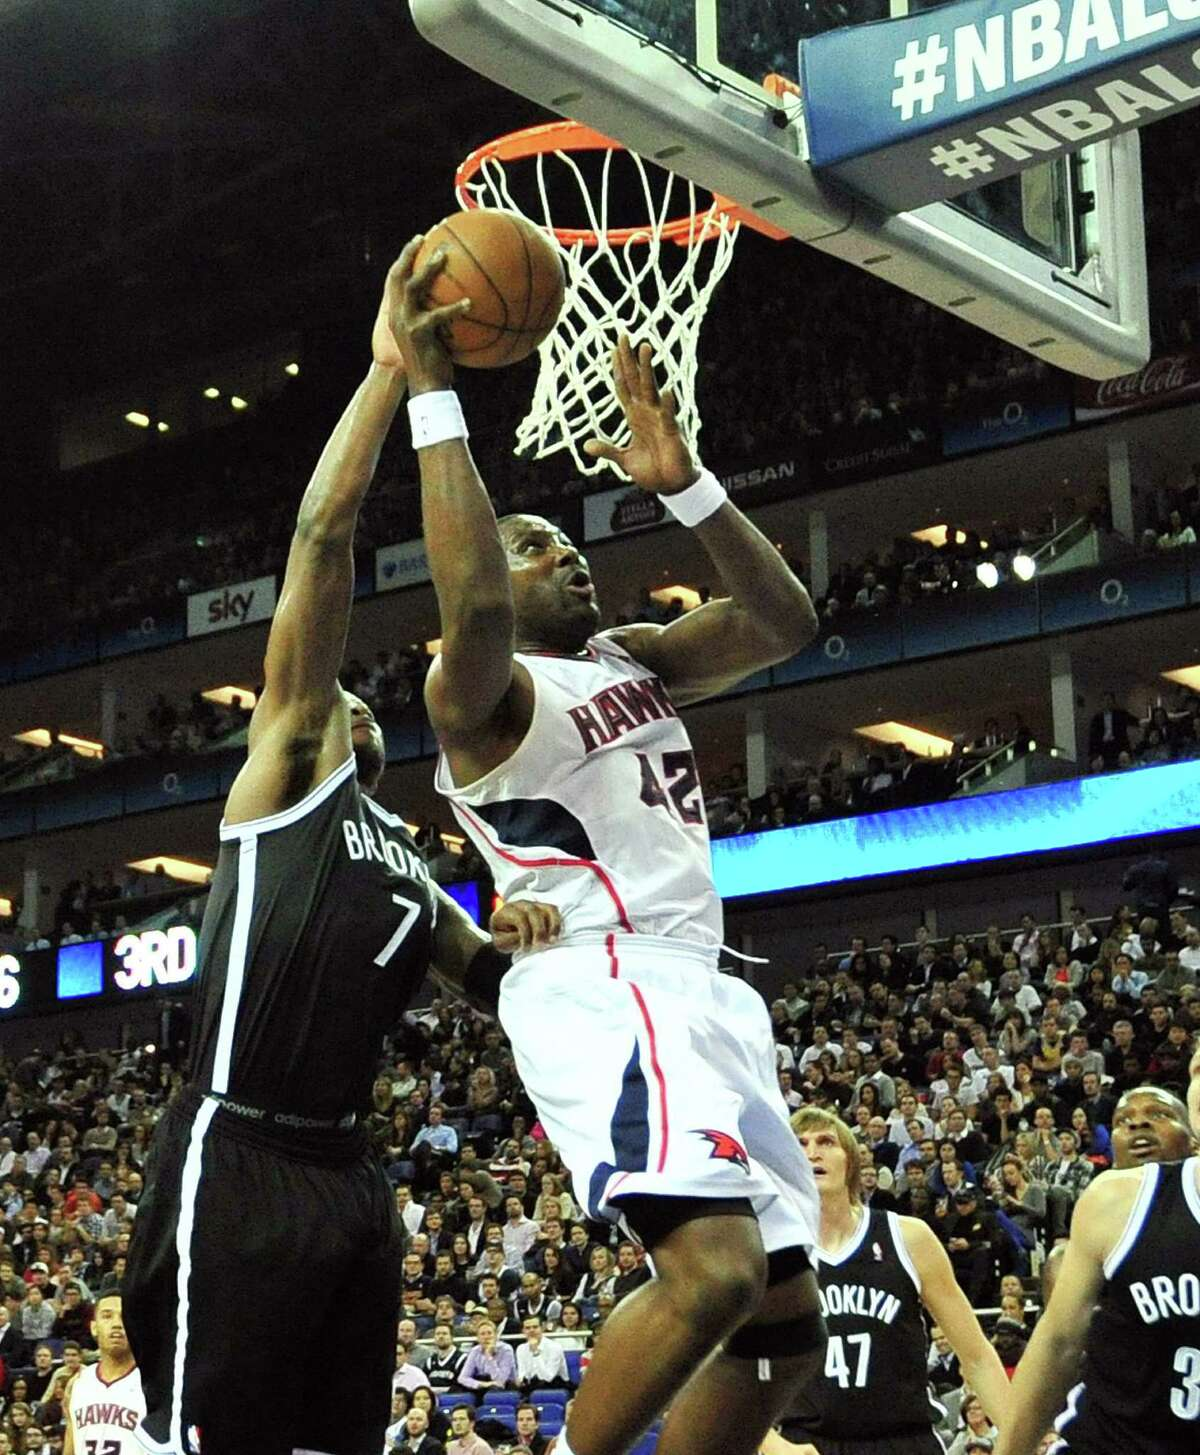 Brooklyn guard Joe Johnson (left), who scored 26 of his 29 points in the first half, tries to block Atlanta forward Elton Brand at the O2 Arena in London.